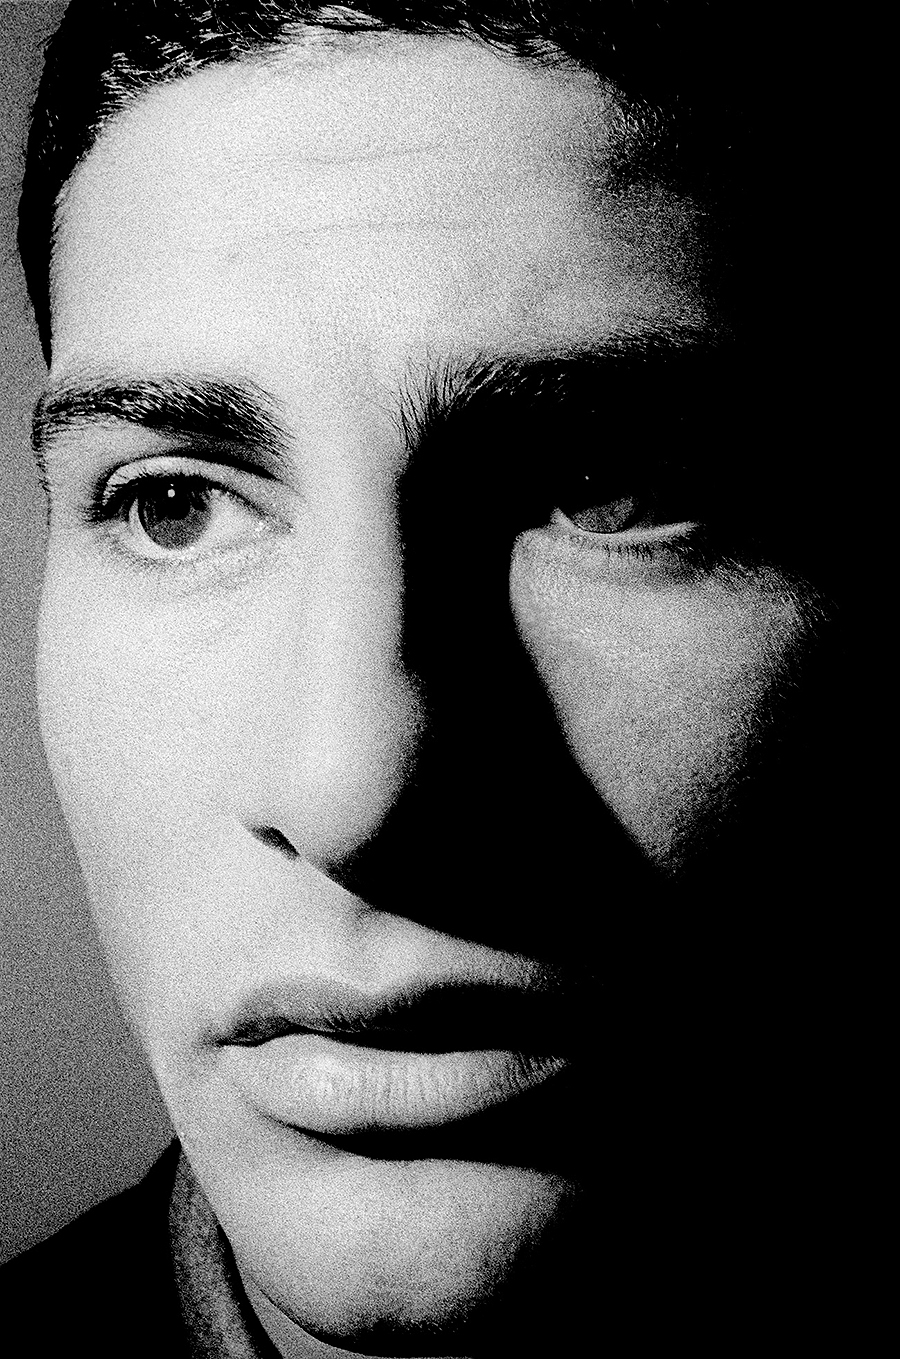 Tony_Ward_early_portfolio_classics_Calvin_Klein_test_model_headshot